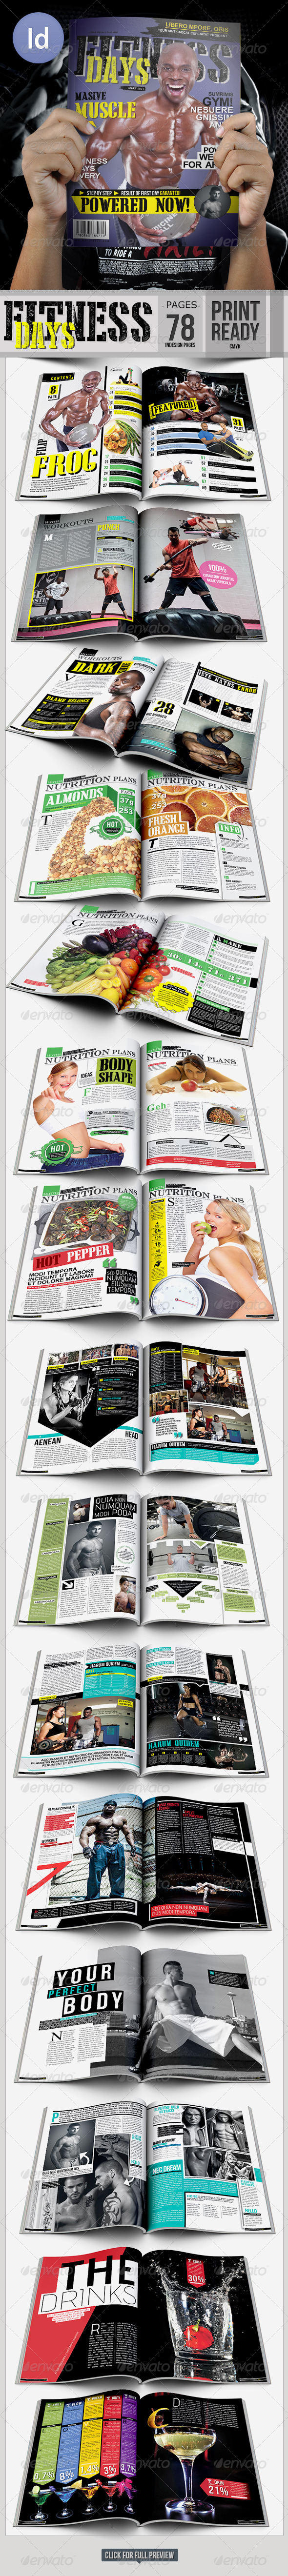 Fitness Day Magazine A4 - Magazines Print Templates